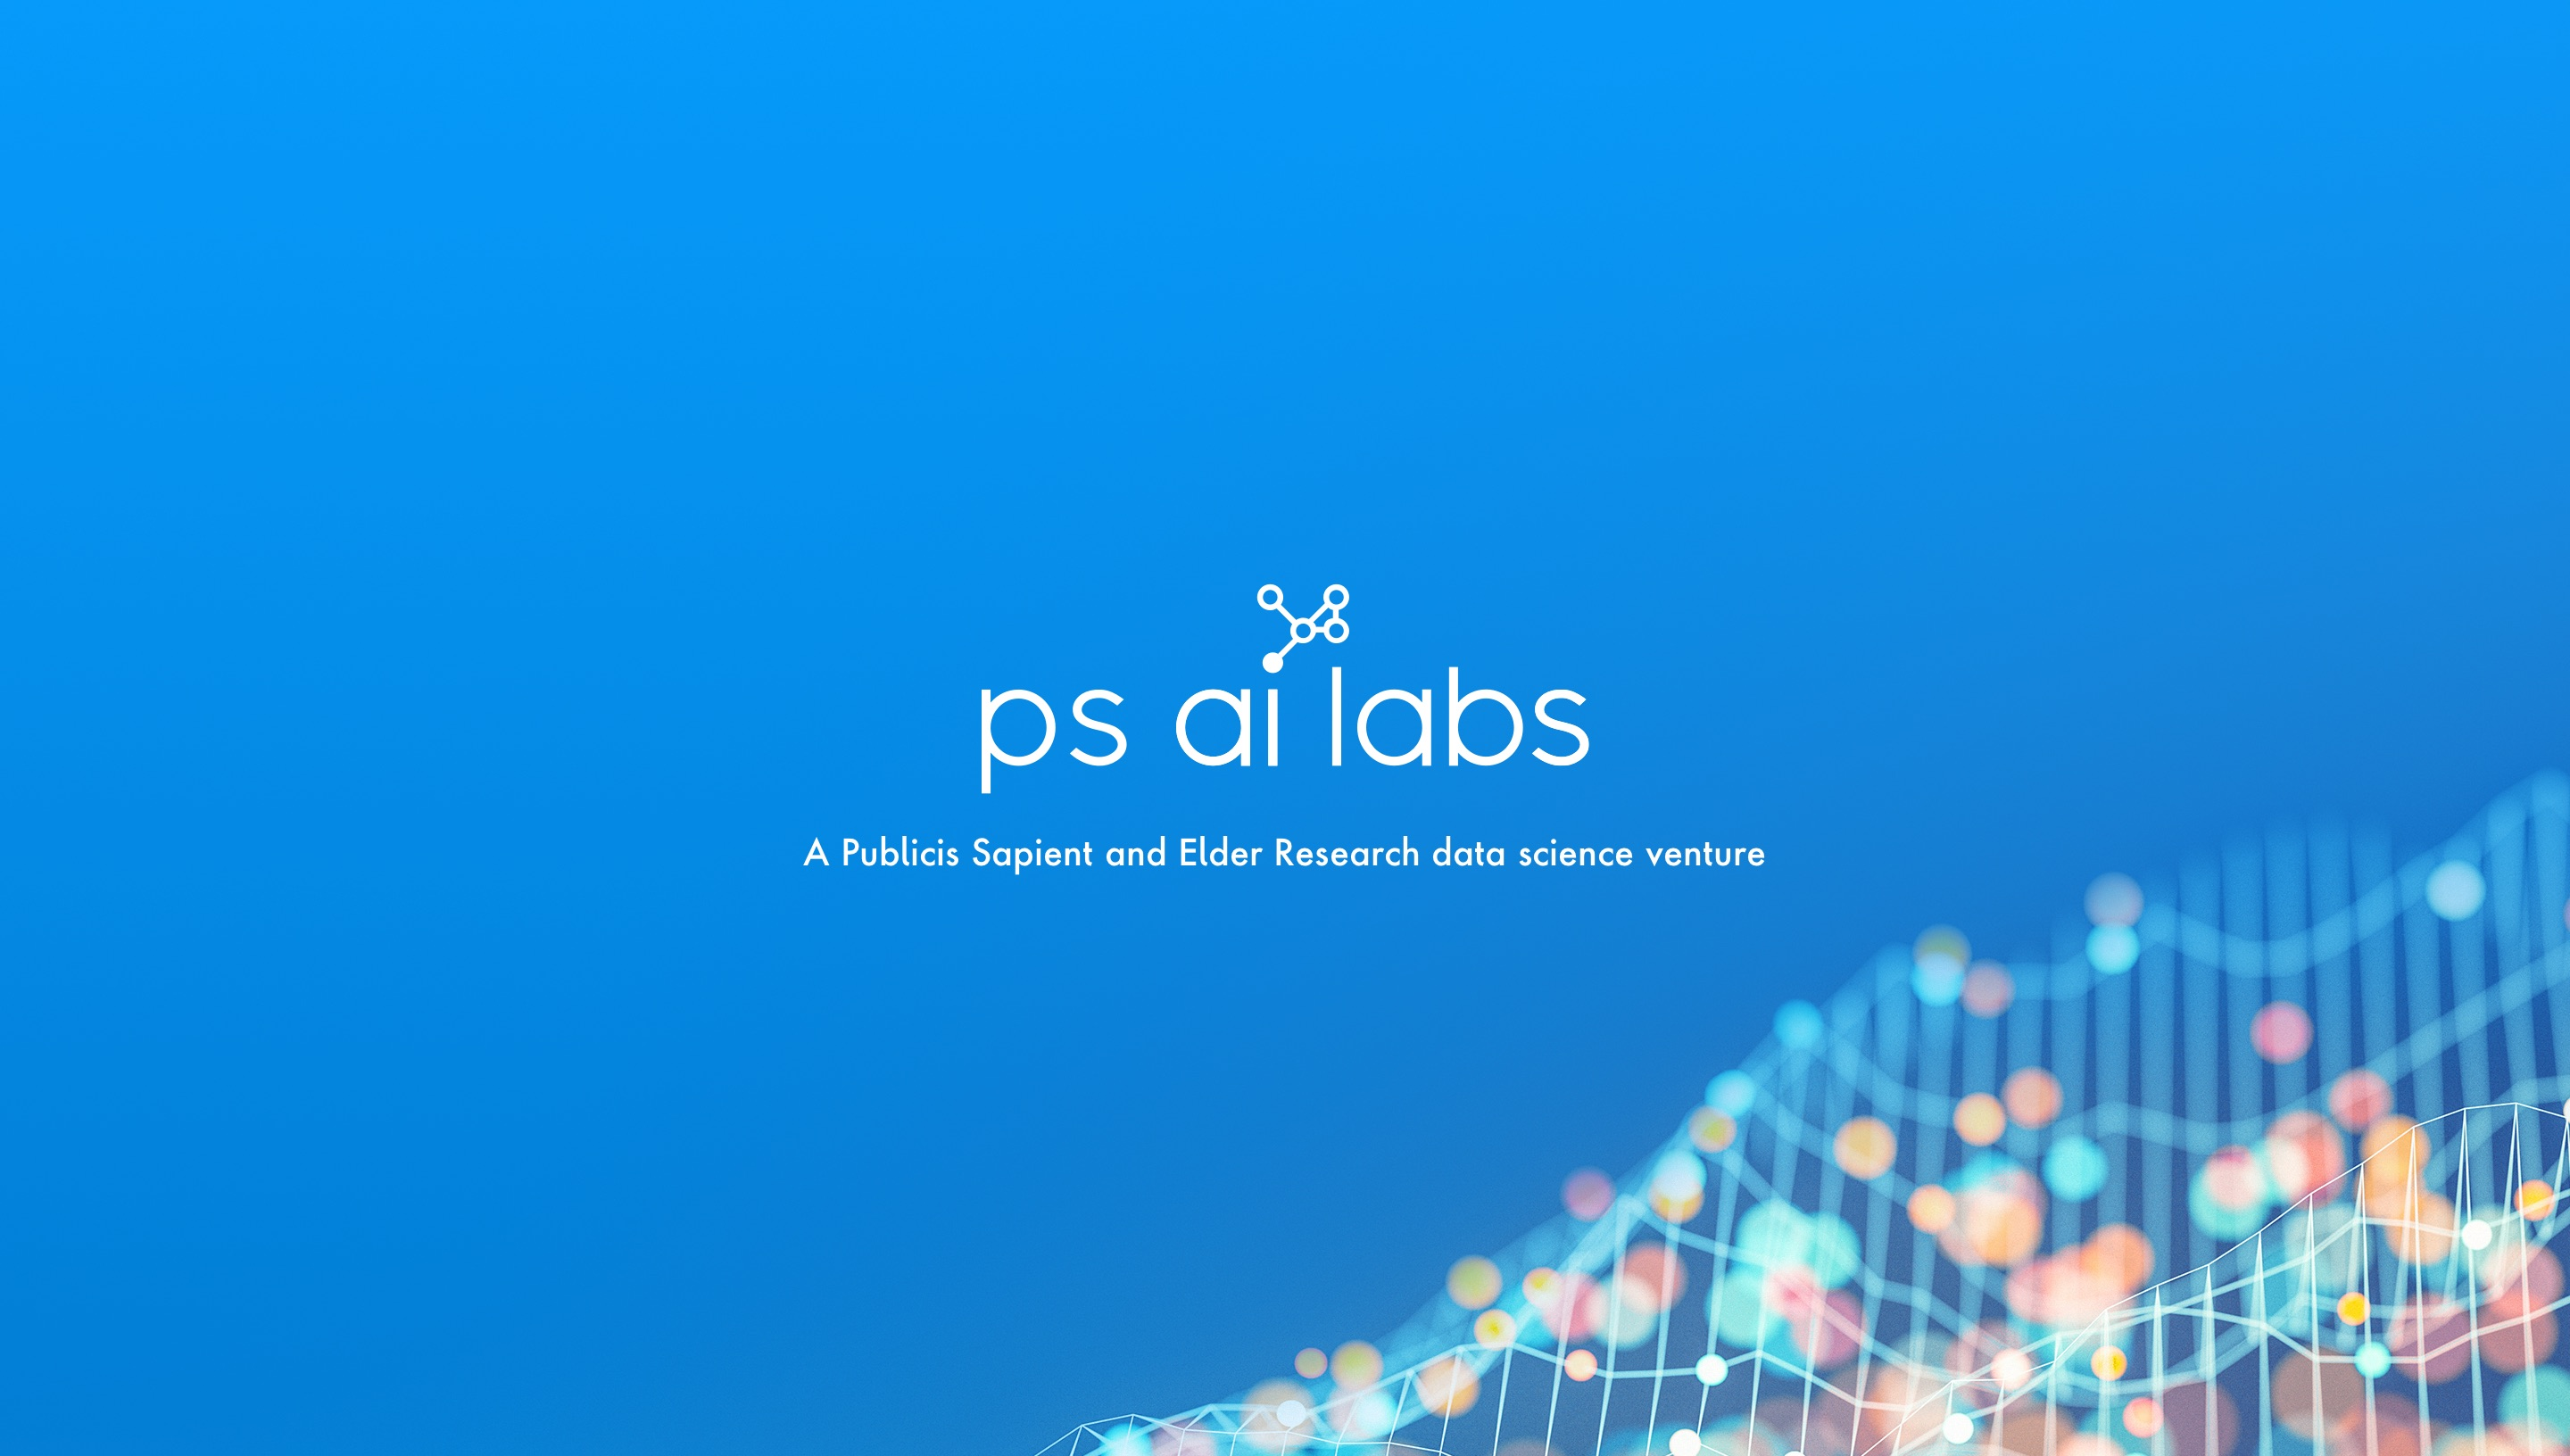 PS AI Labs - A Publicis Sapient and Elder Research data science venture